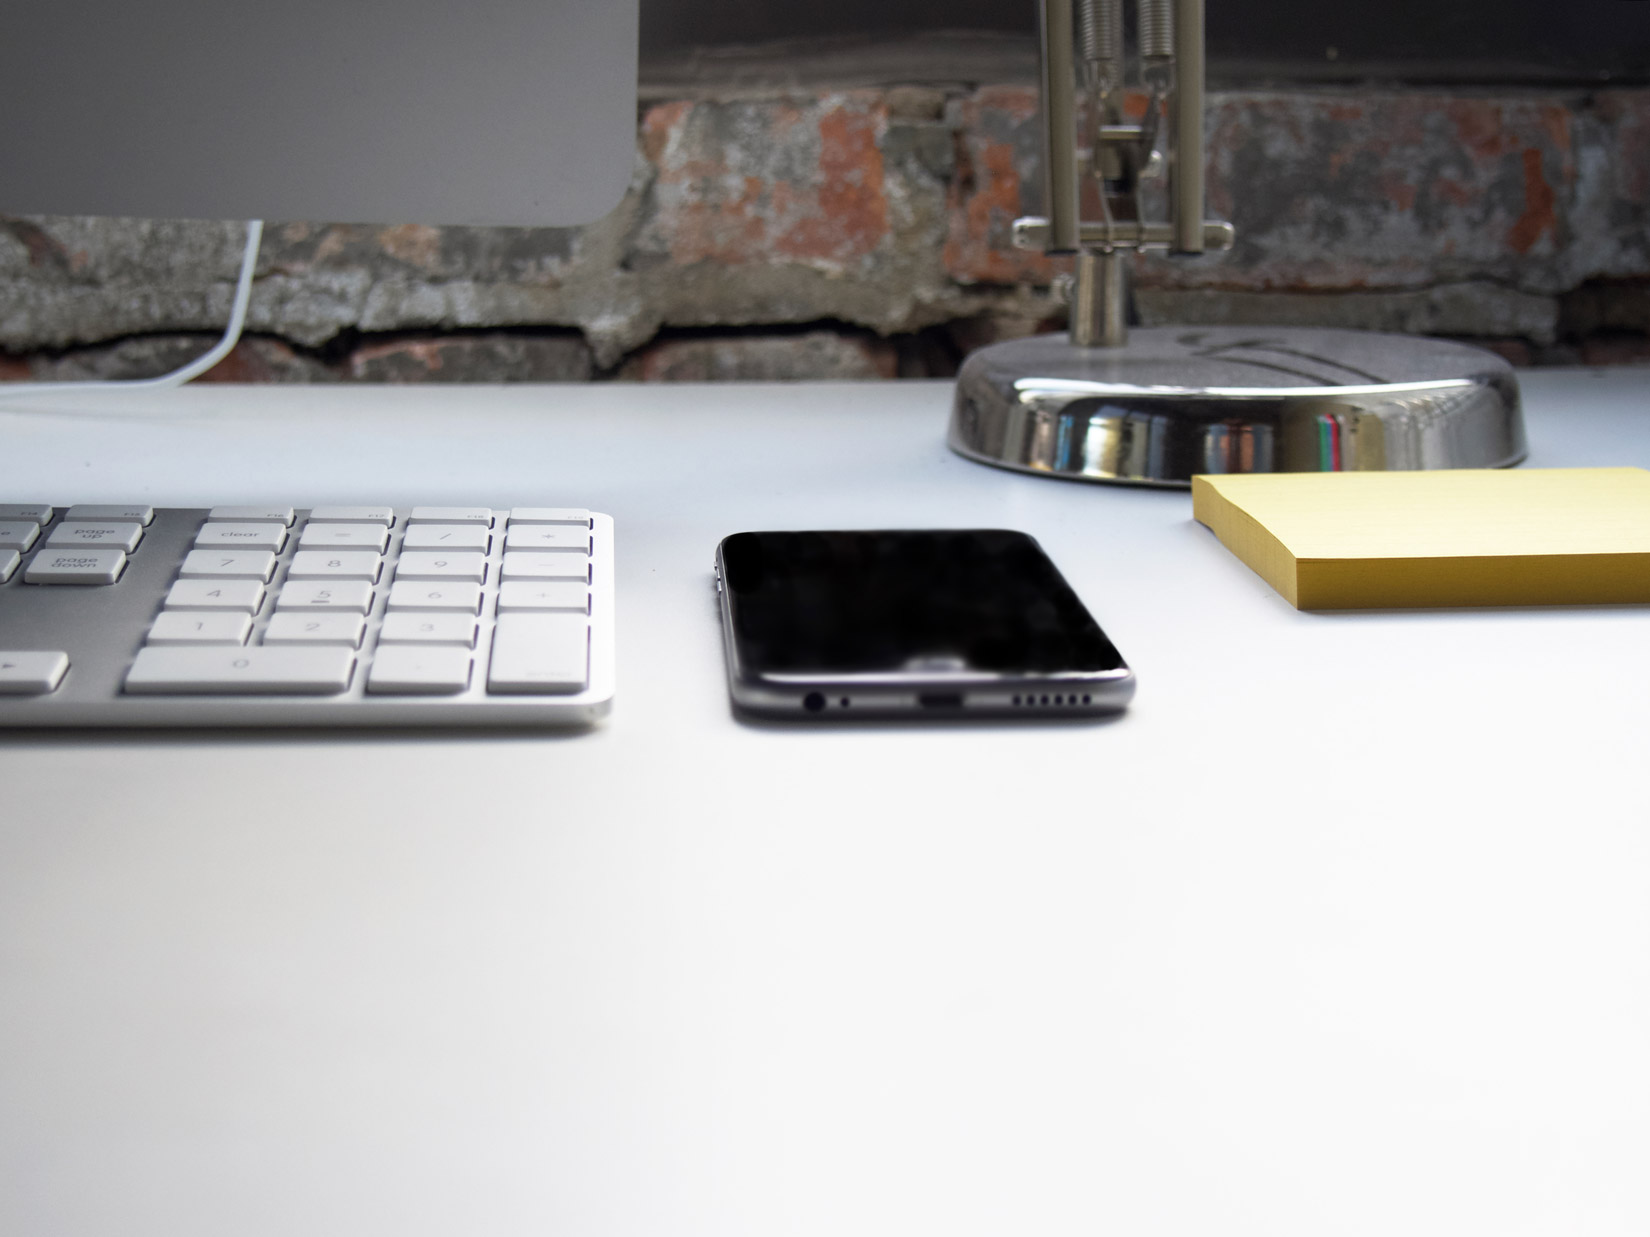 Computer and Phone on Desk